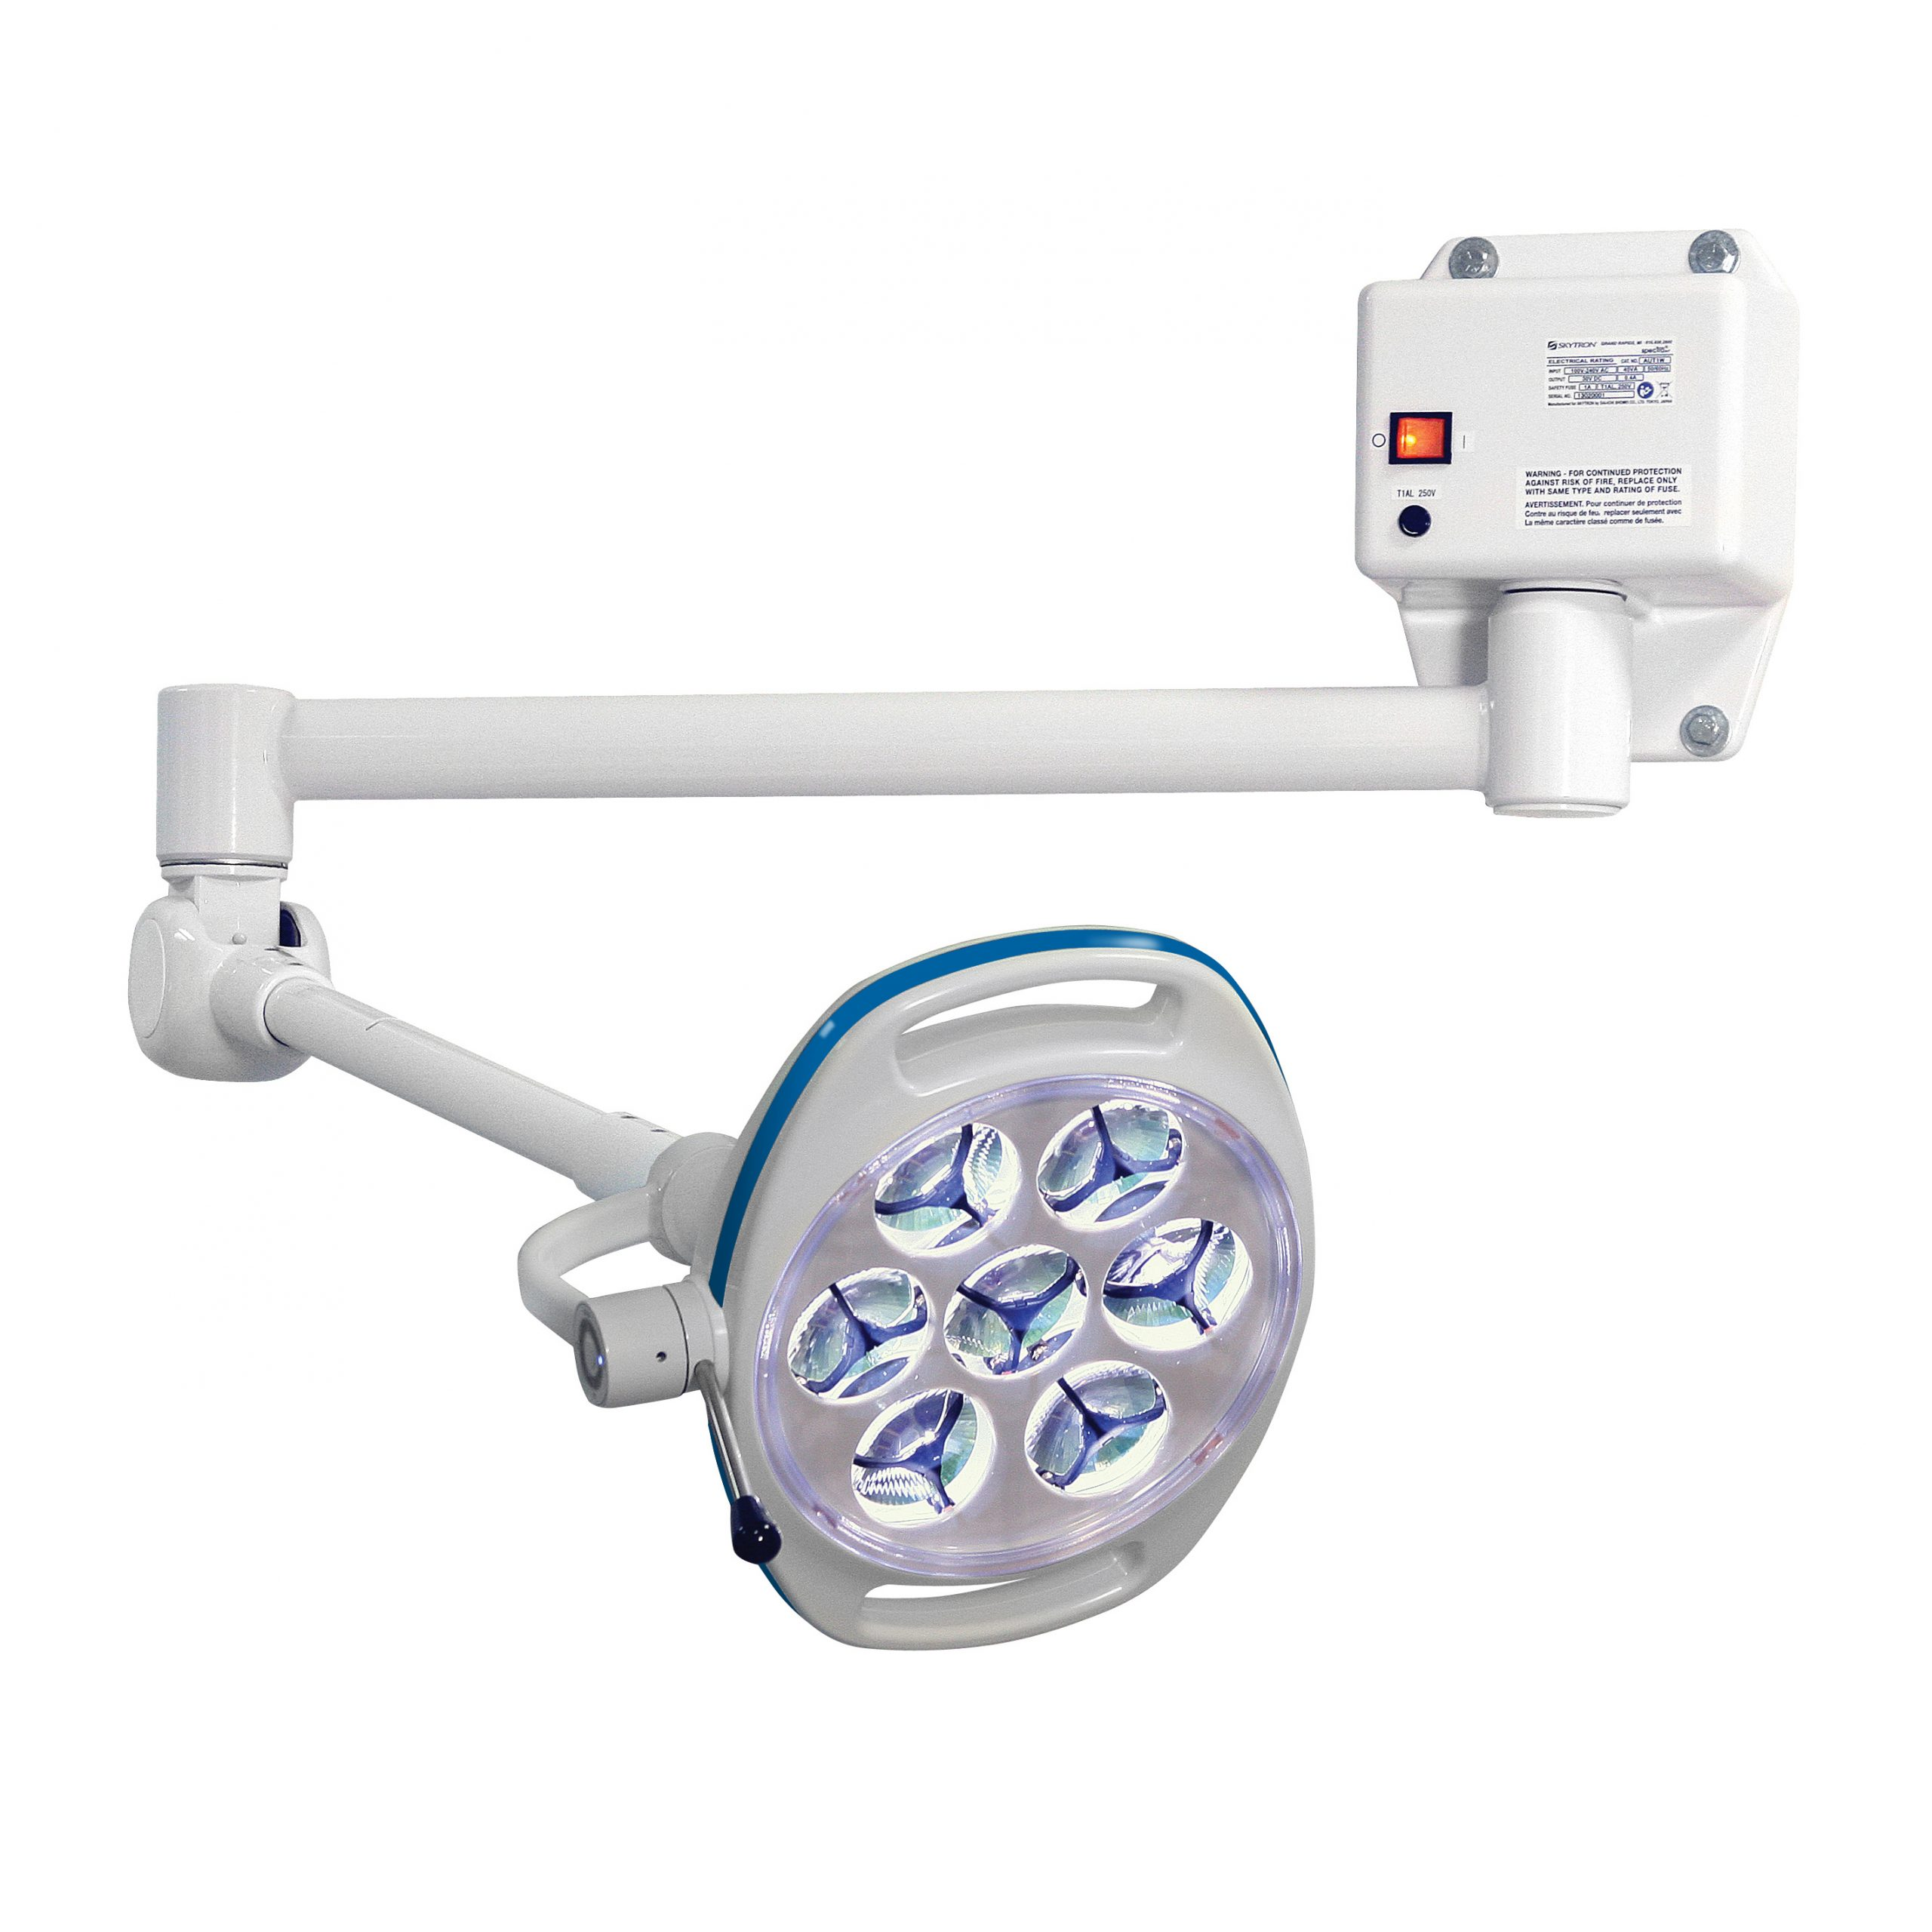 Wall Mounted Surgical Lights